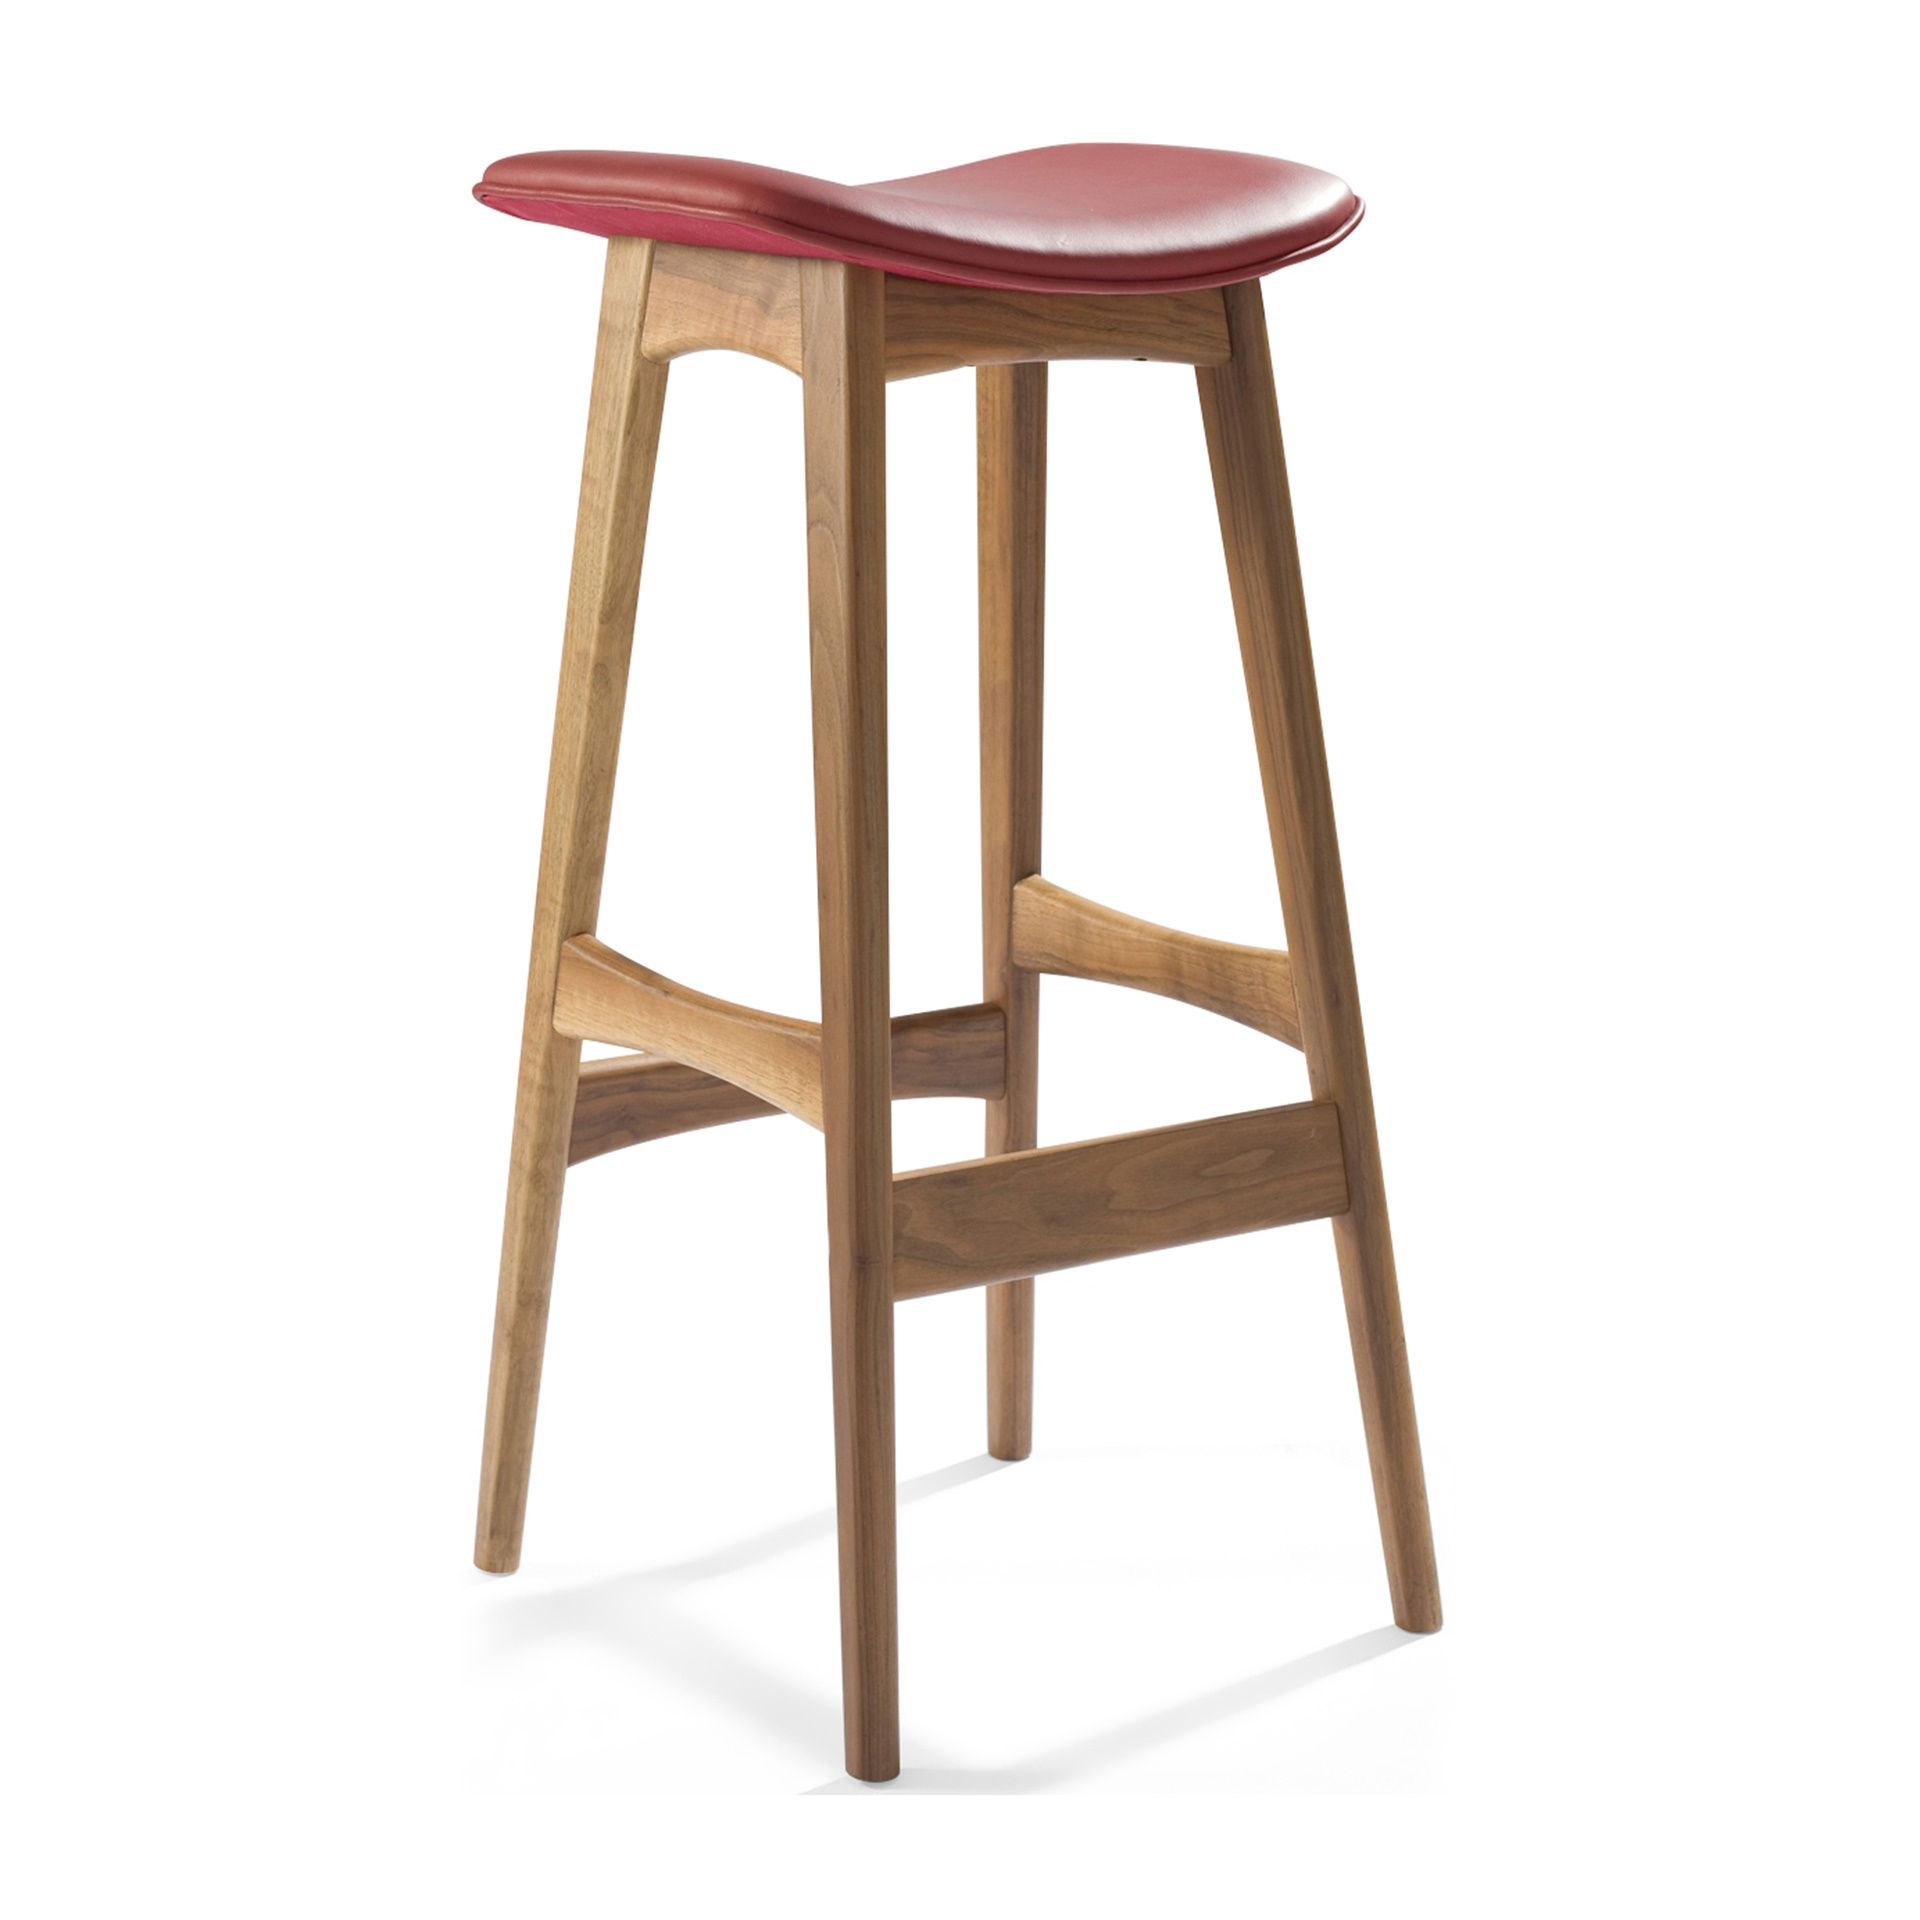 Fabulous Andersen Allegra Bar Stool Pabps2019 Chair Design Images Pabps2019Com